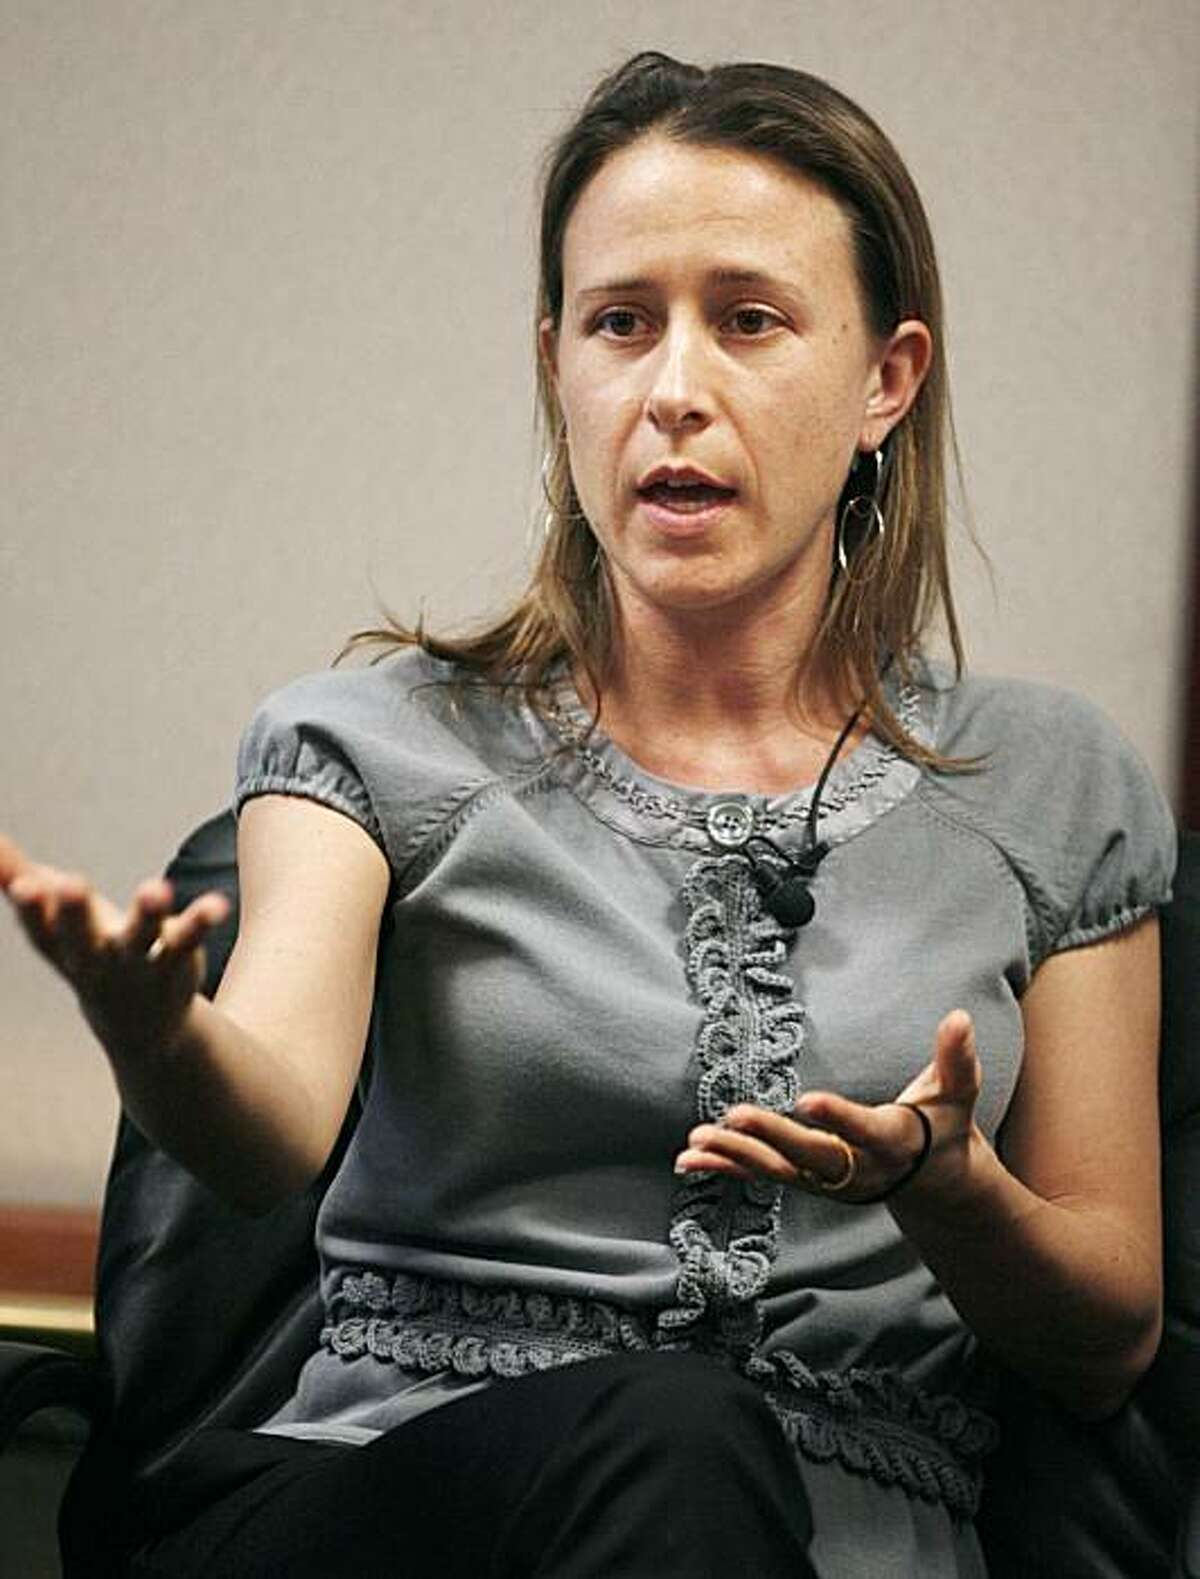 Leading the list is the new ge? netic testing service, 23andMe, co? founded by Anne Wojcicki, a 35-? year-old biologist